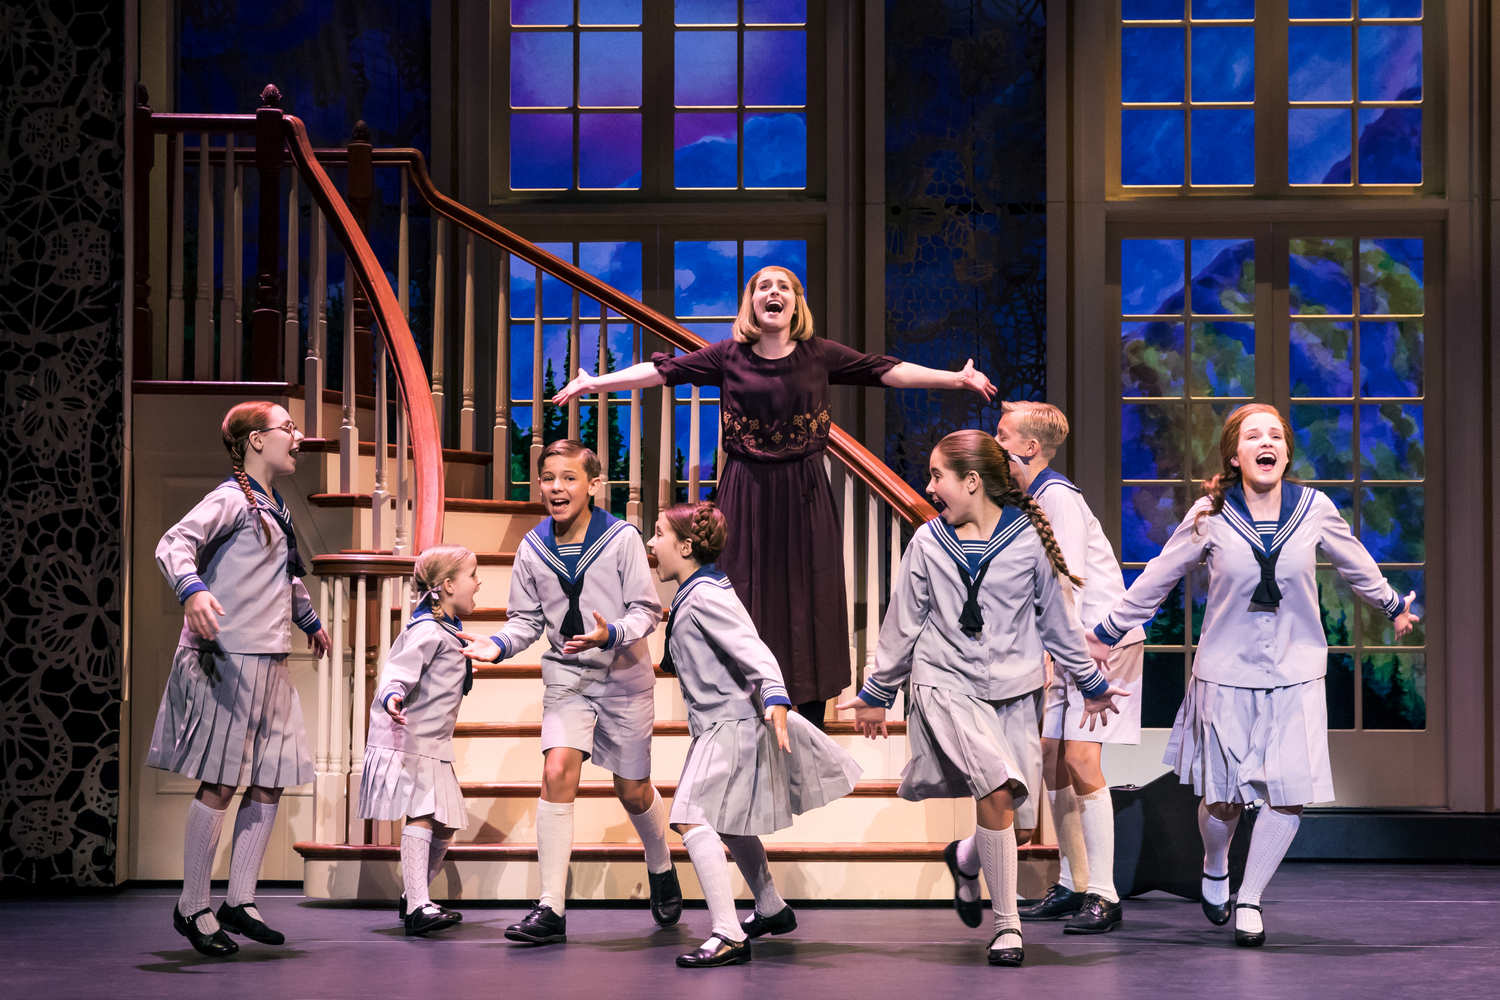 BWW Review: THE SOUND OF MUSIC National Tour Filled with Favorite Things